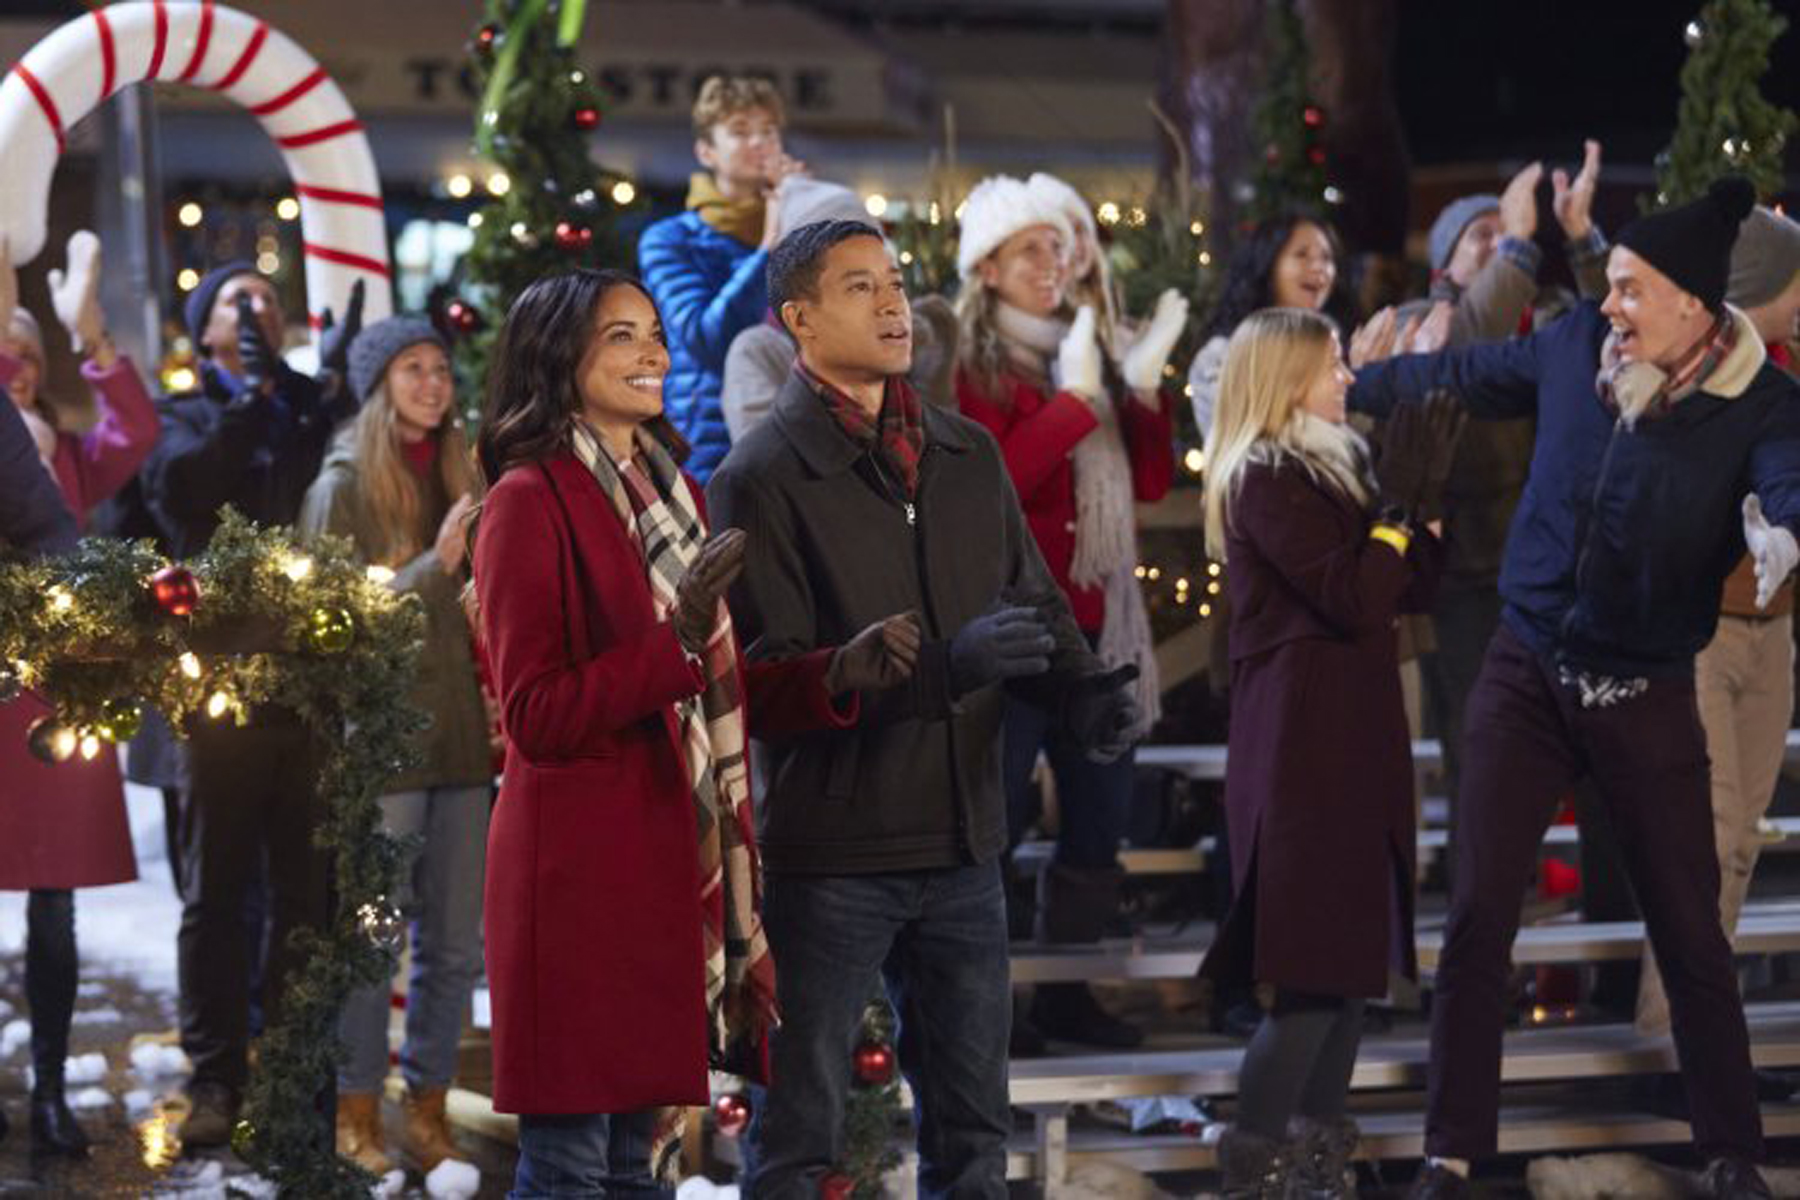 movie still of people outside during Holiday celebrations